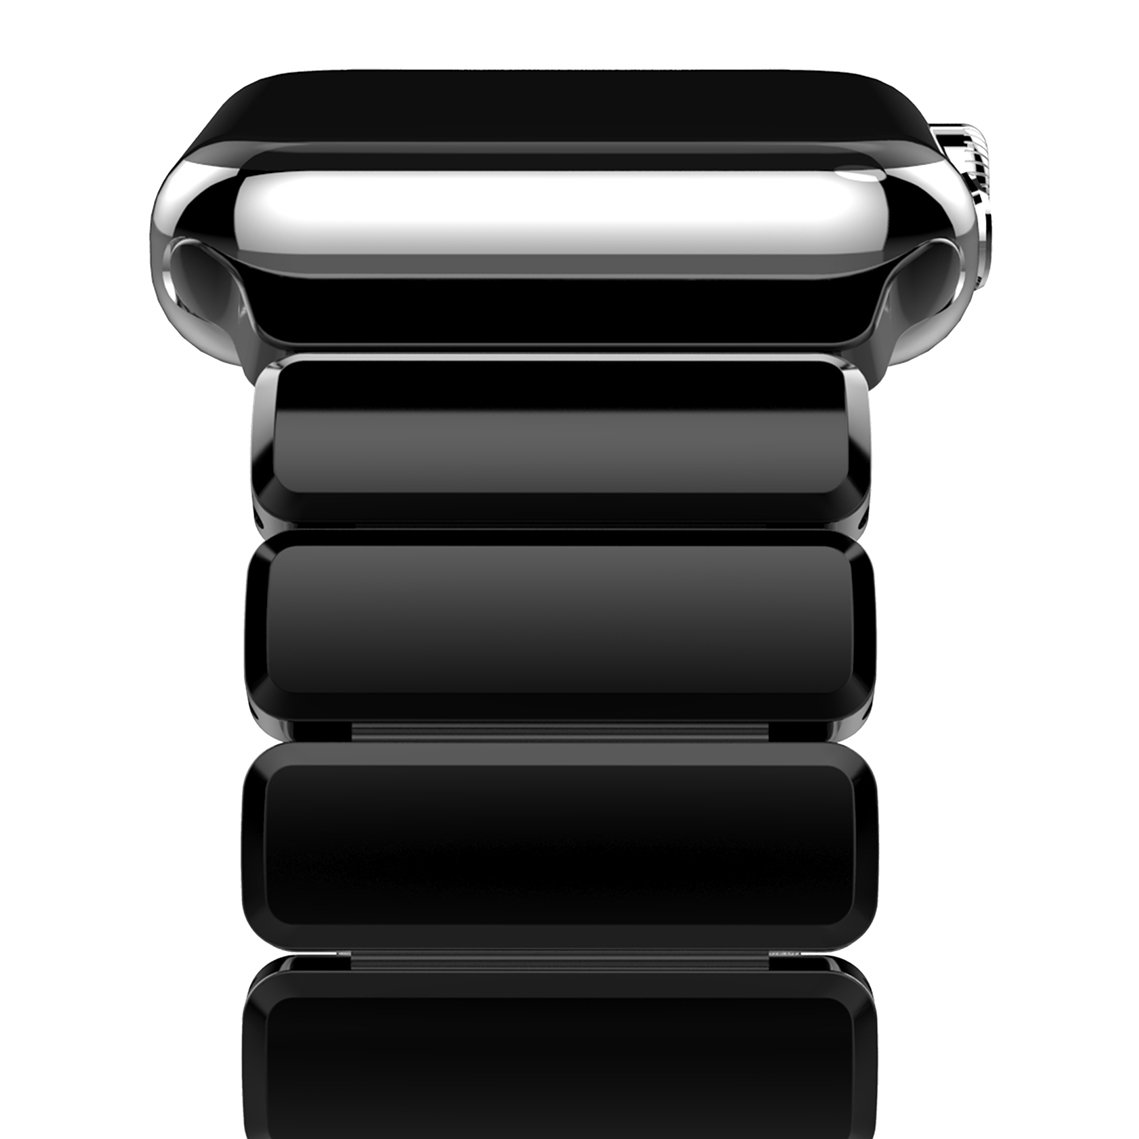 Oittm Watch Band for Apple Watch Series 4, 44mm/42mm Stainless Steel Replacement Strap Link Bracelet Metal iWatch Band with Double Button Folding Clasp for Apple Watch 4/3/2/1 44mm/42m (Bright Black)